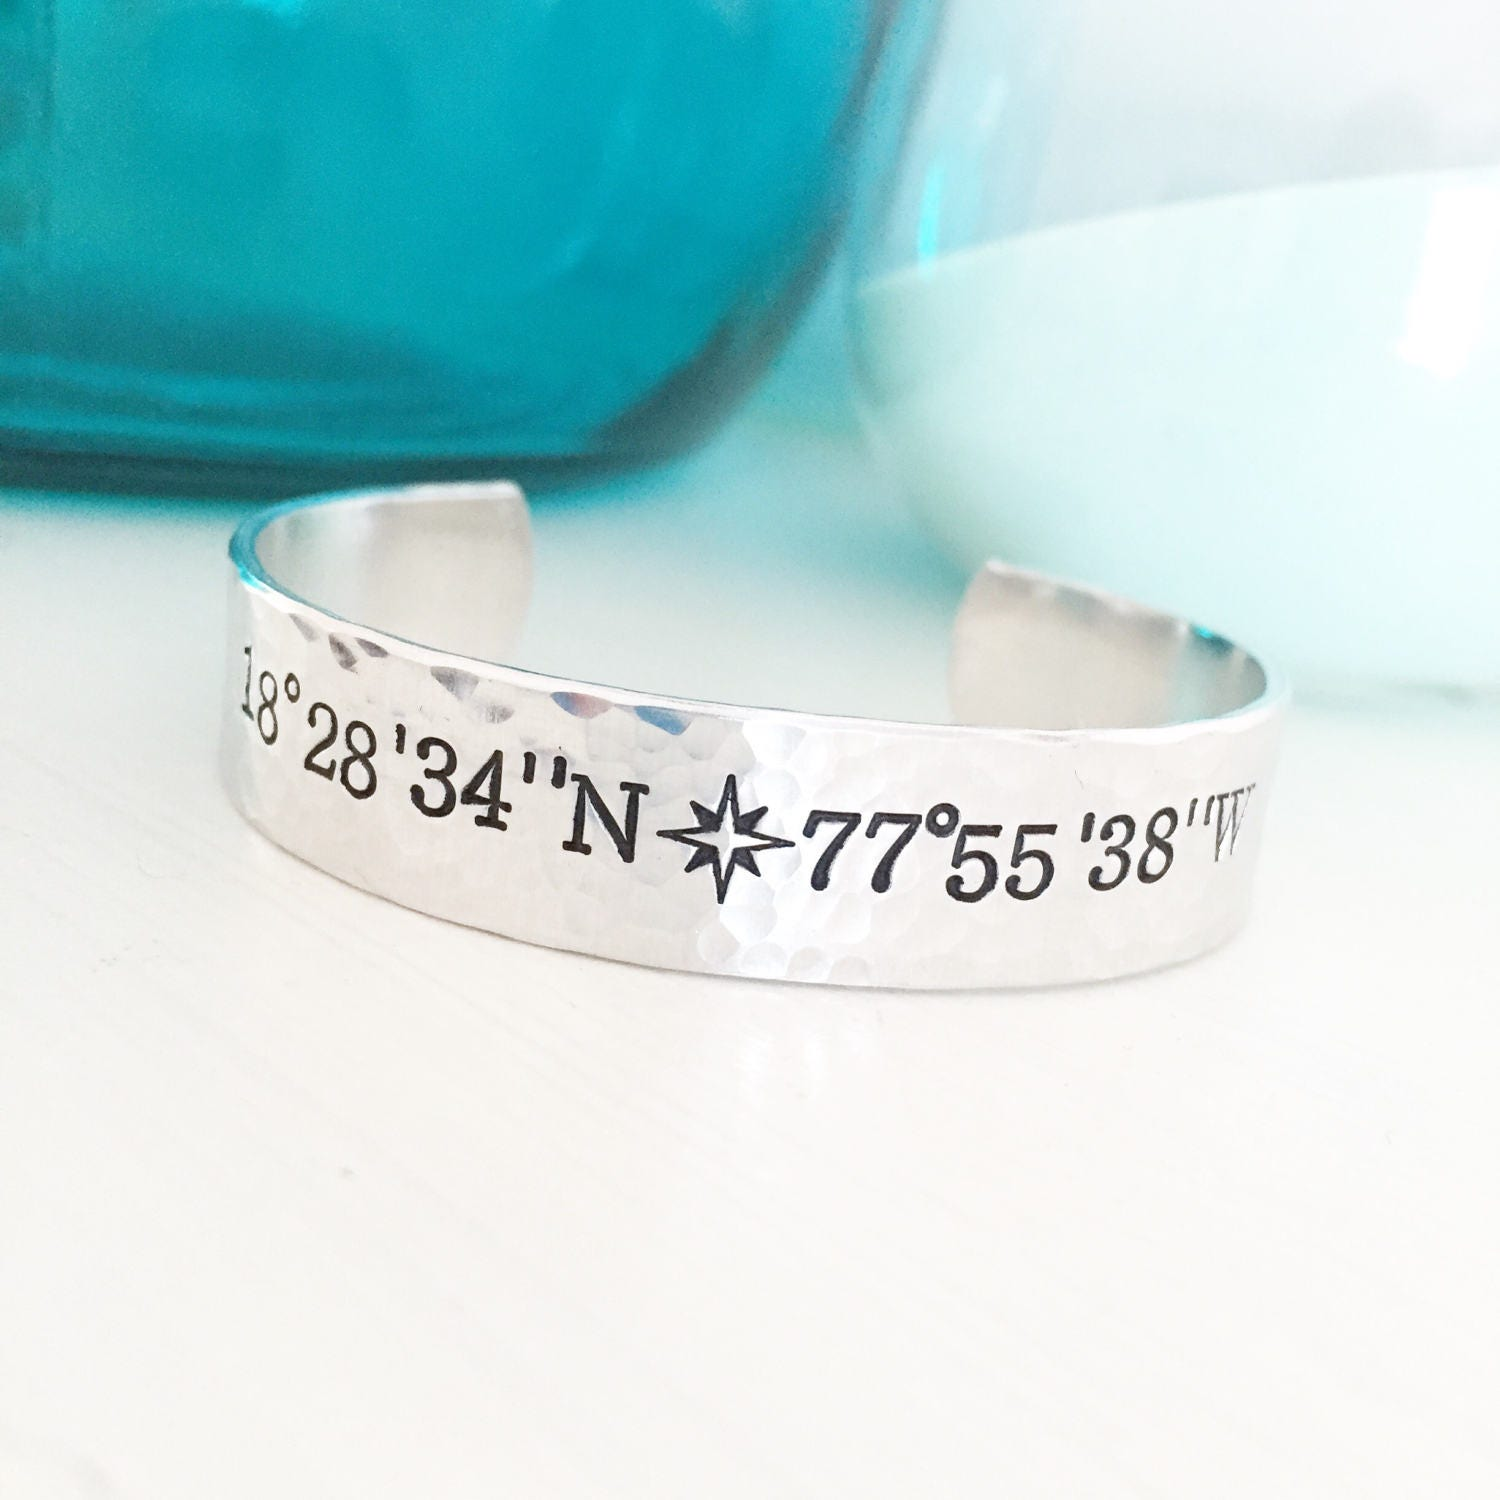 seal lat bracelet latitude compass long westmeyer wax longitude shannon products jewelry necklace coordinates